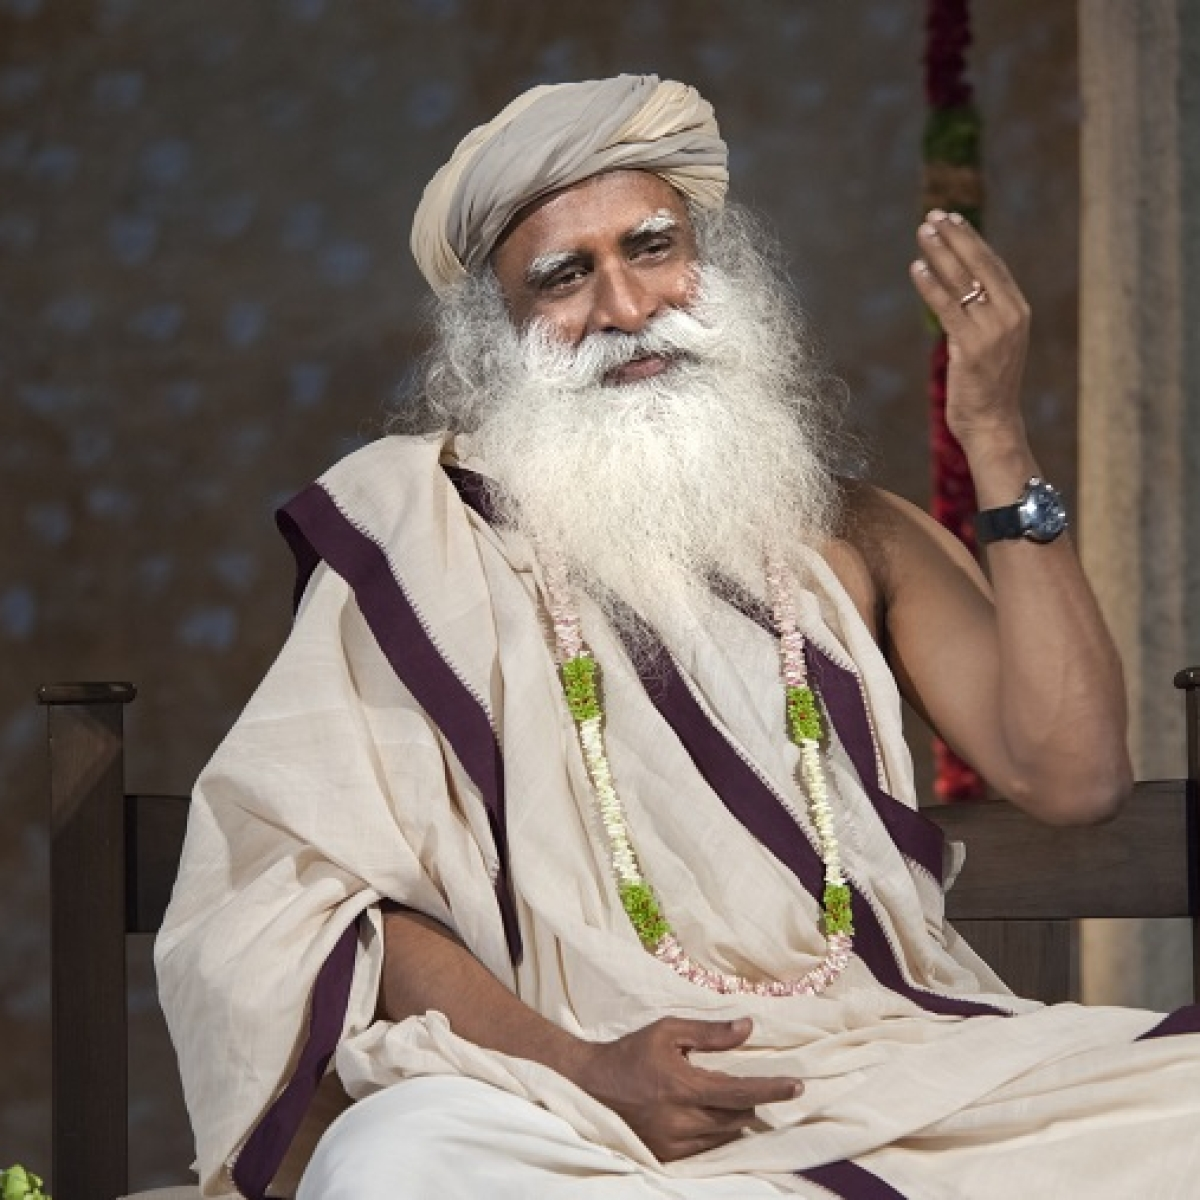 'Step in right direction': Sadhguru congratulates TN government on move to make temple affairs transparent